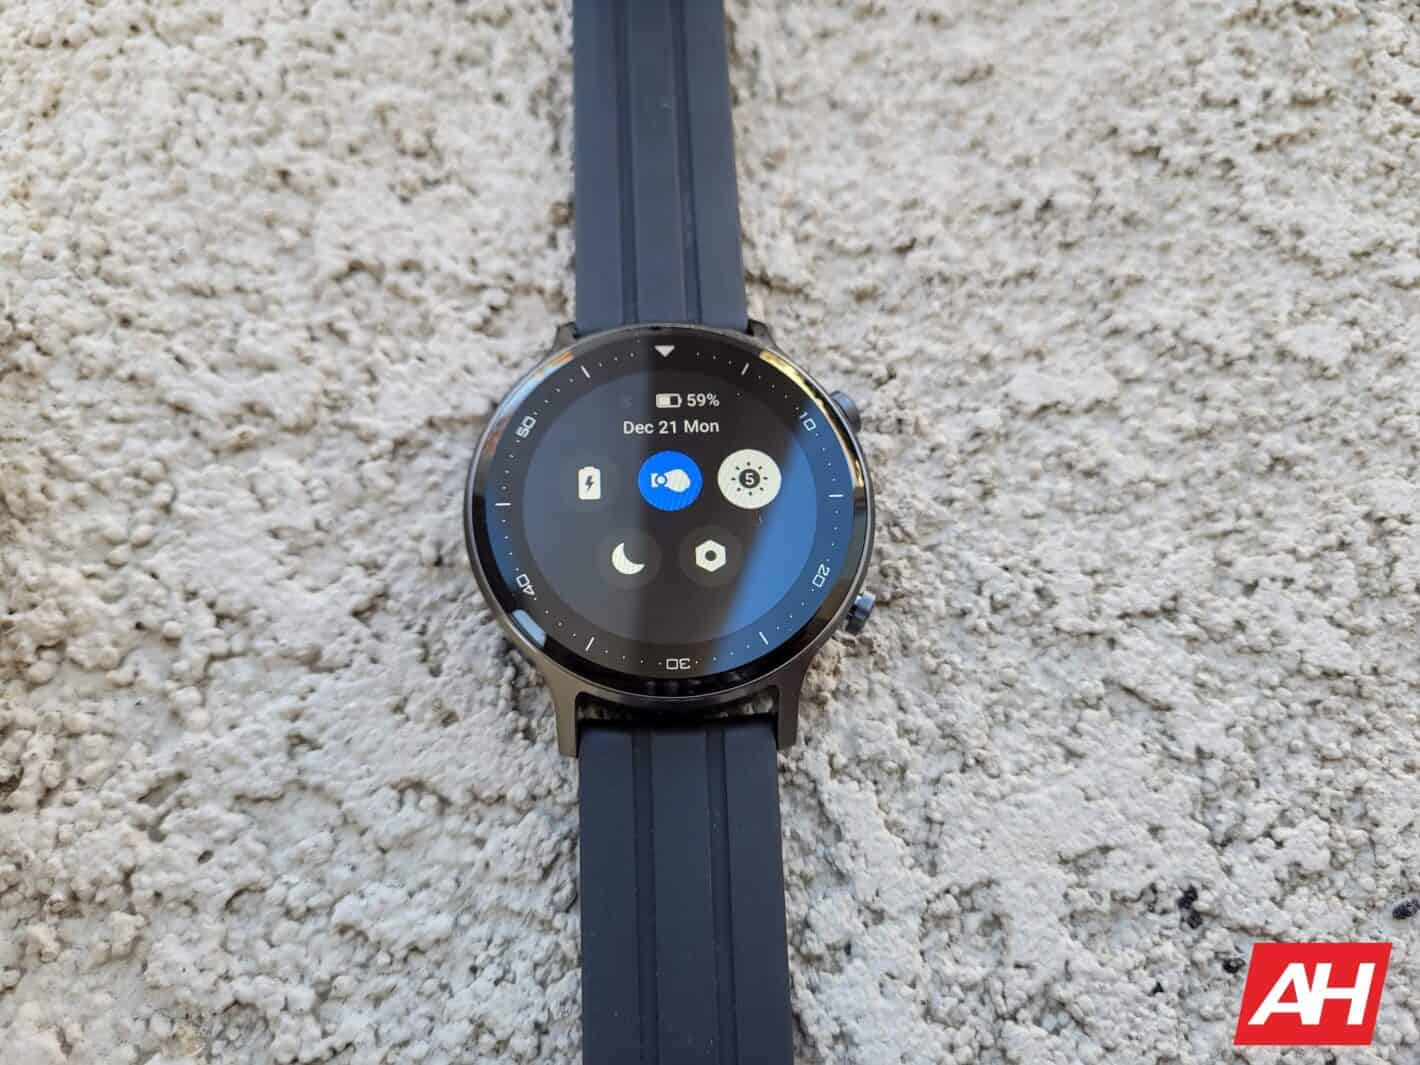 Realme Watch S AH HR Use5